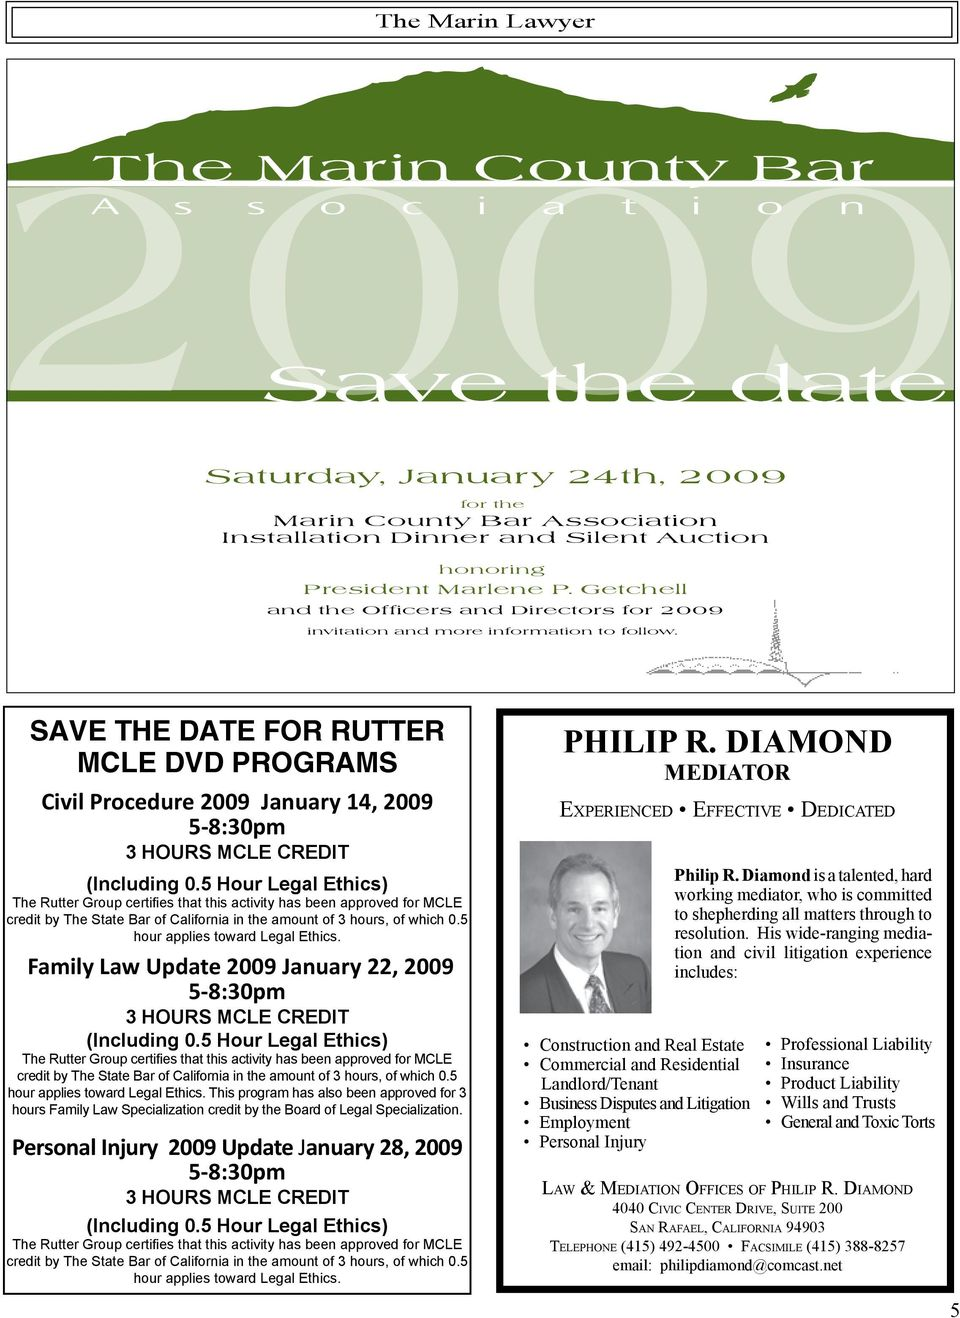 Save the Date for Rutter MCLE DVD Programs Civil Procedure 2009 January 14, 2009 5-8:30pm 3 HOURS MCLE CREDIT (Including 0.